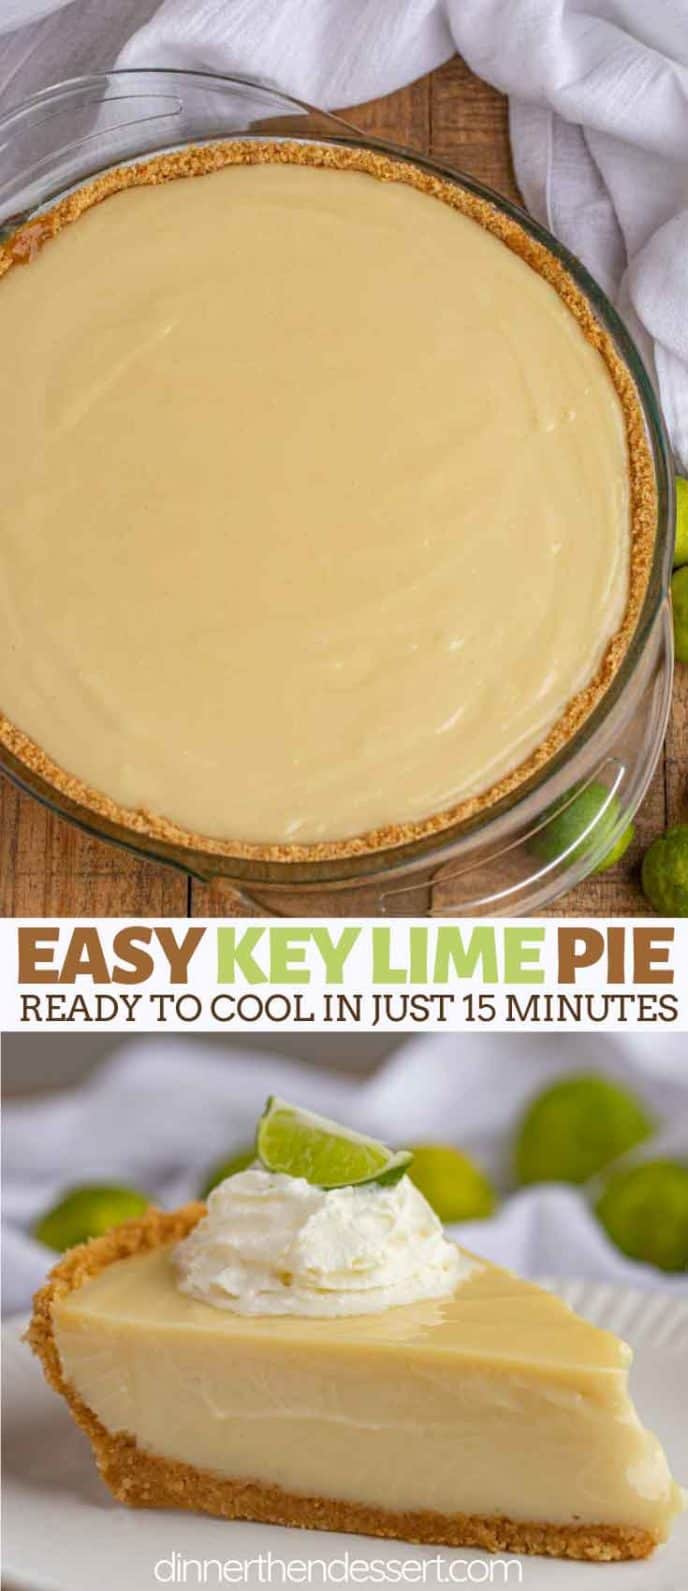 Sliced key lime pie